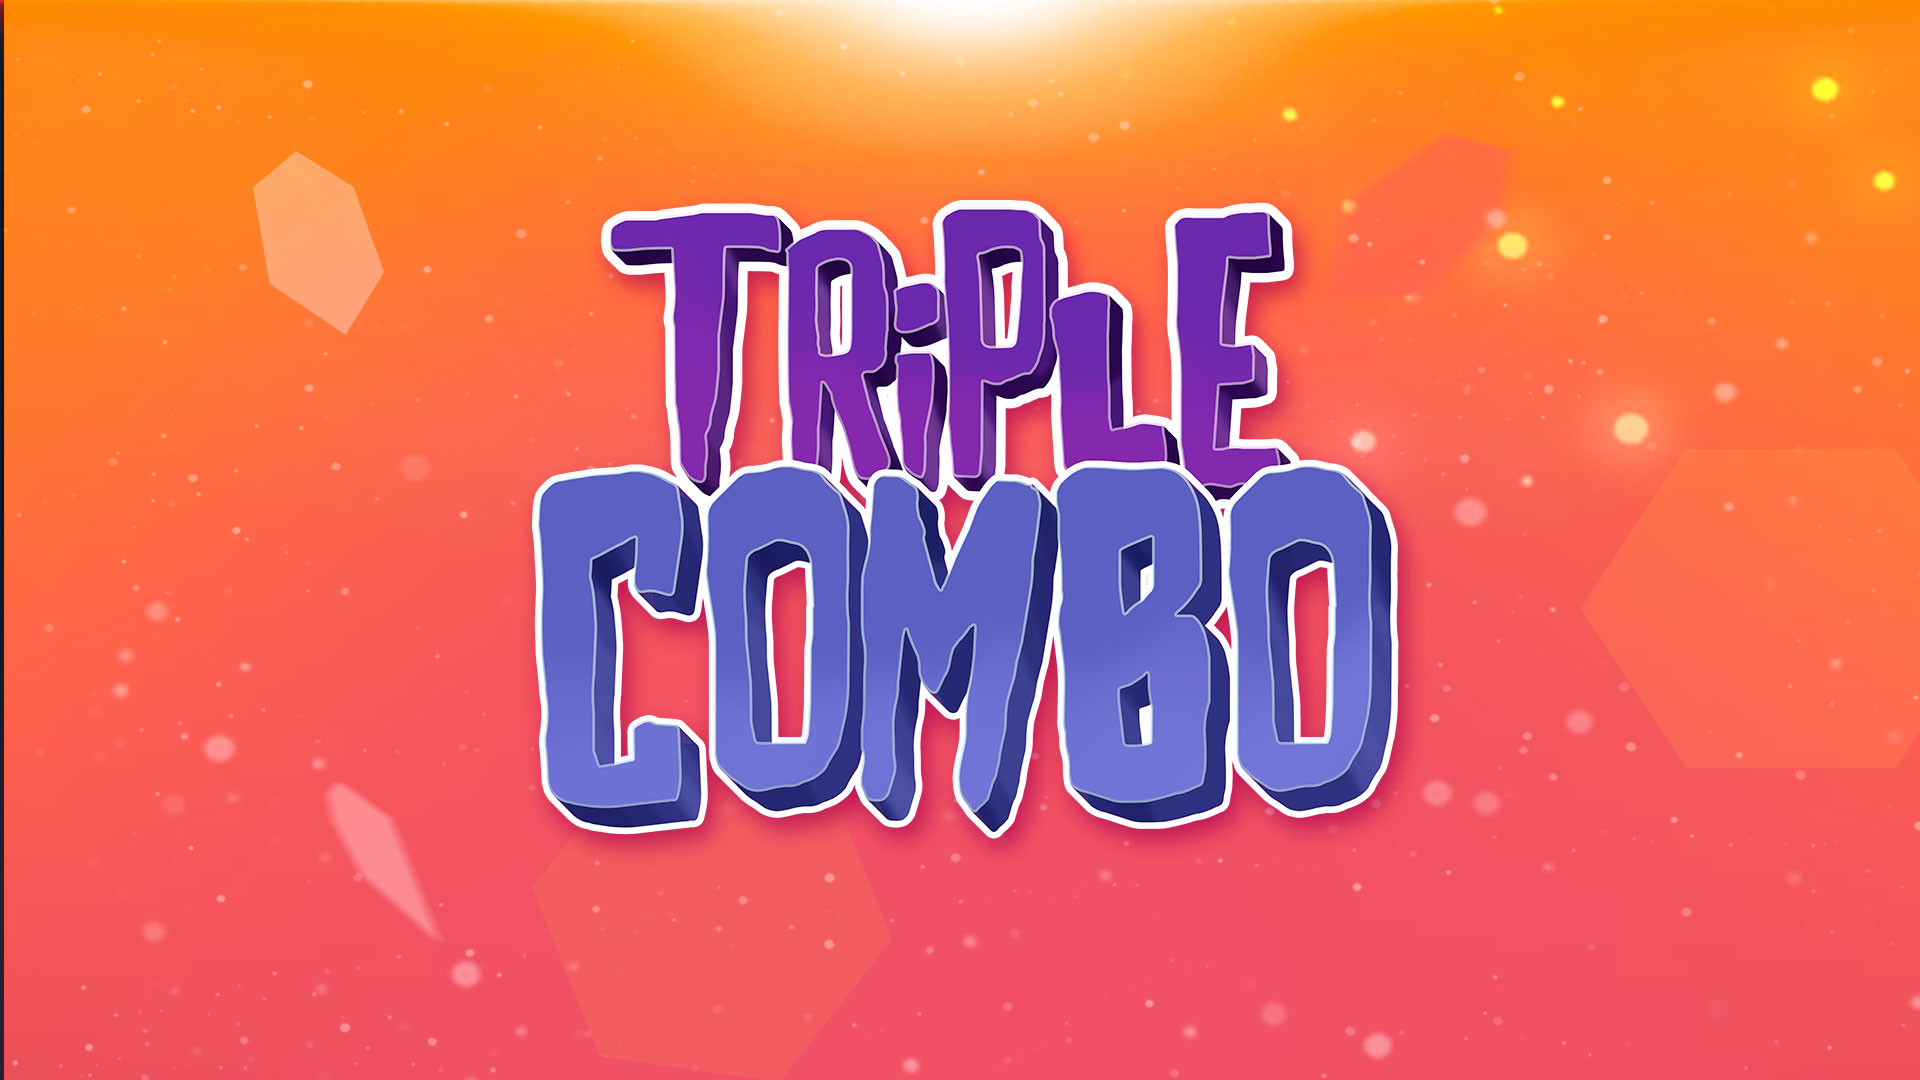 Combo 21 team tripplecobmo